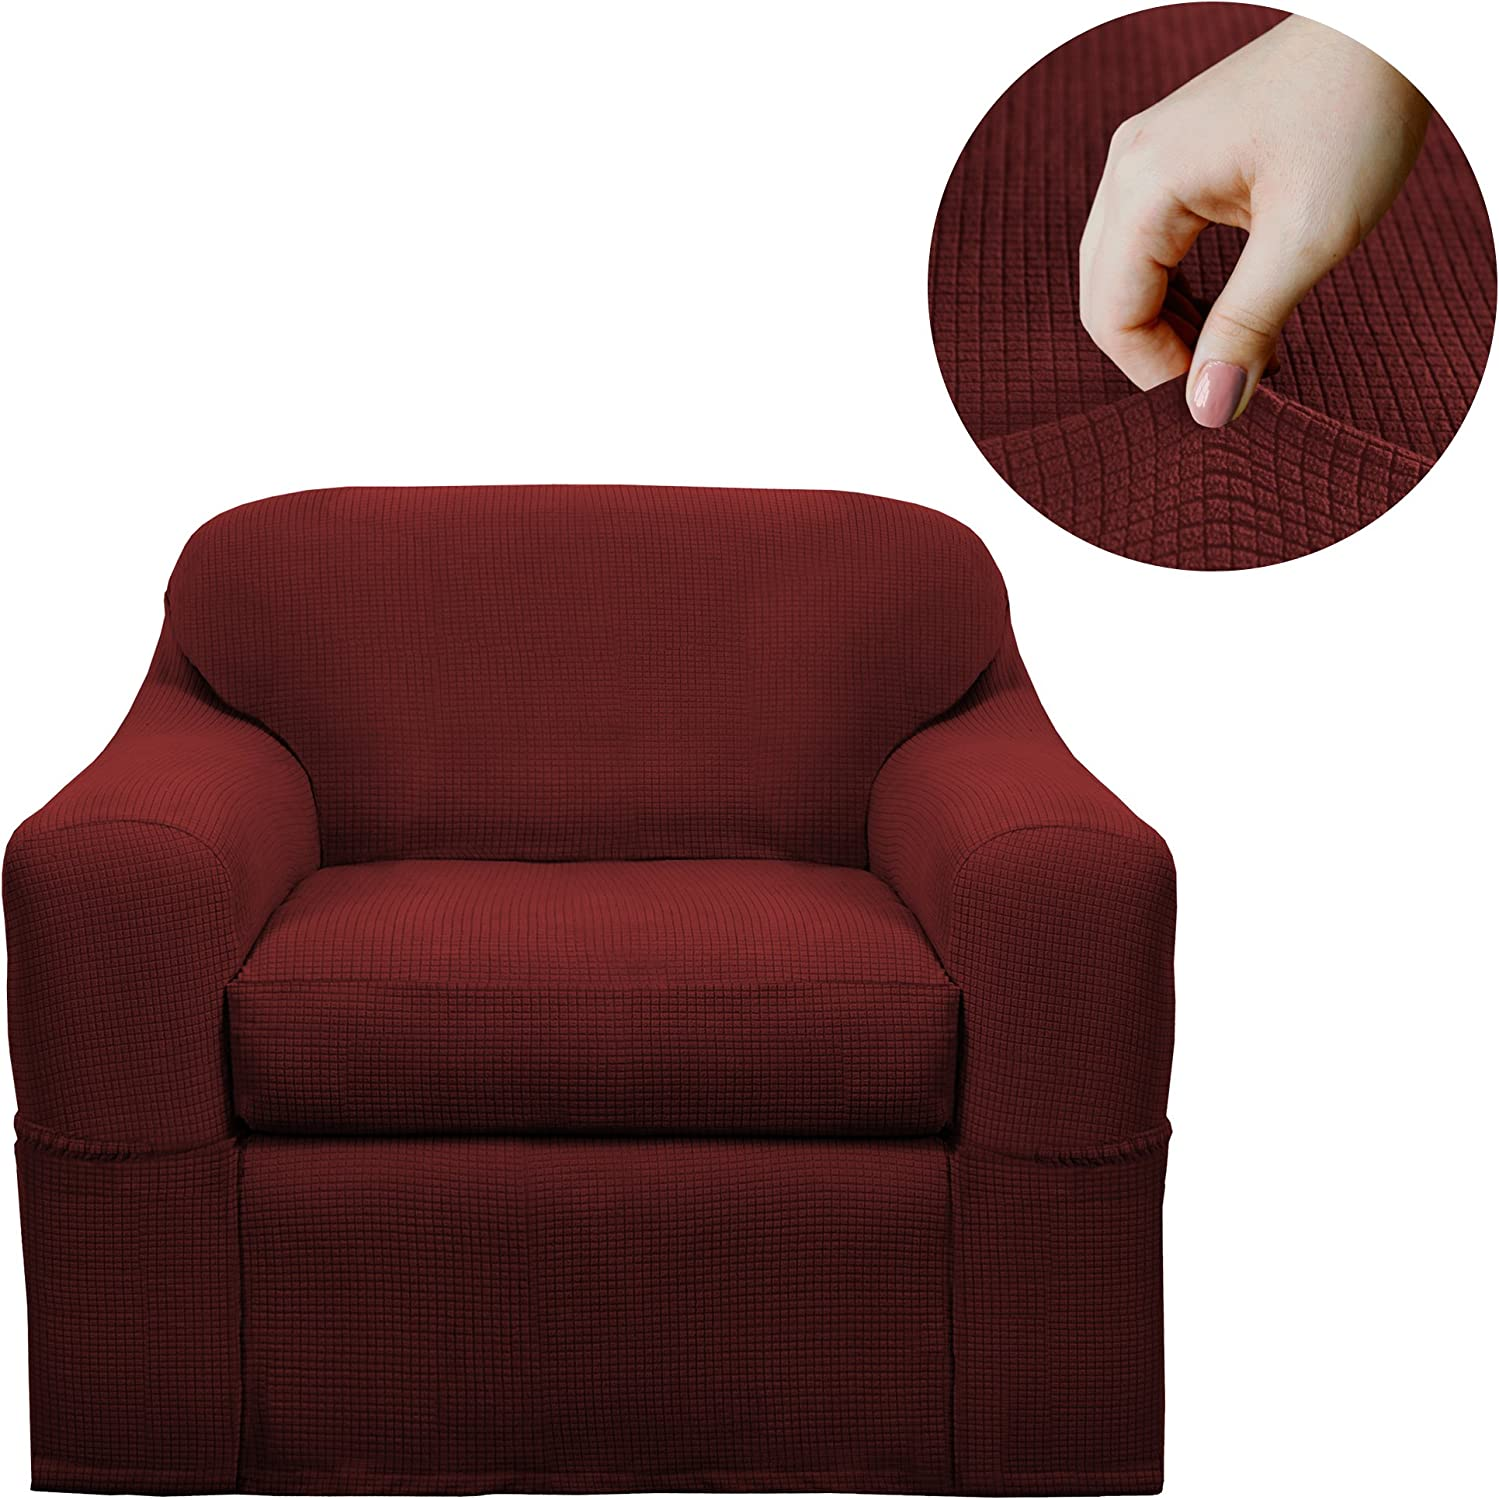 Maytex Reeves Stretch 2 Piece Arm Chair Furniture Cover Slipcover, Red